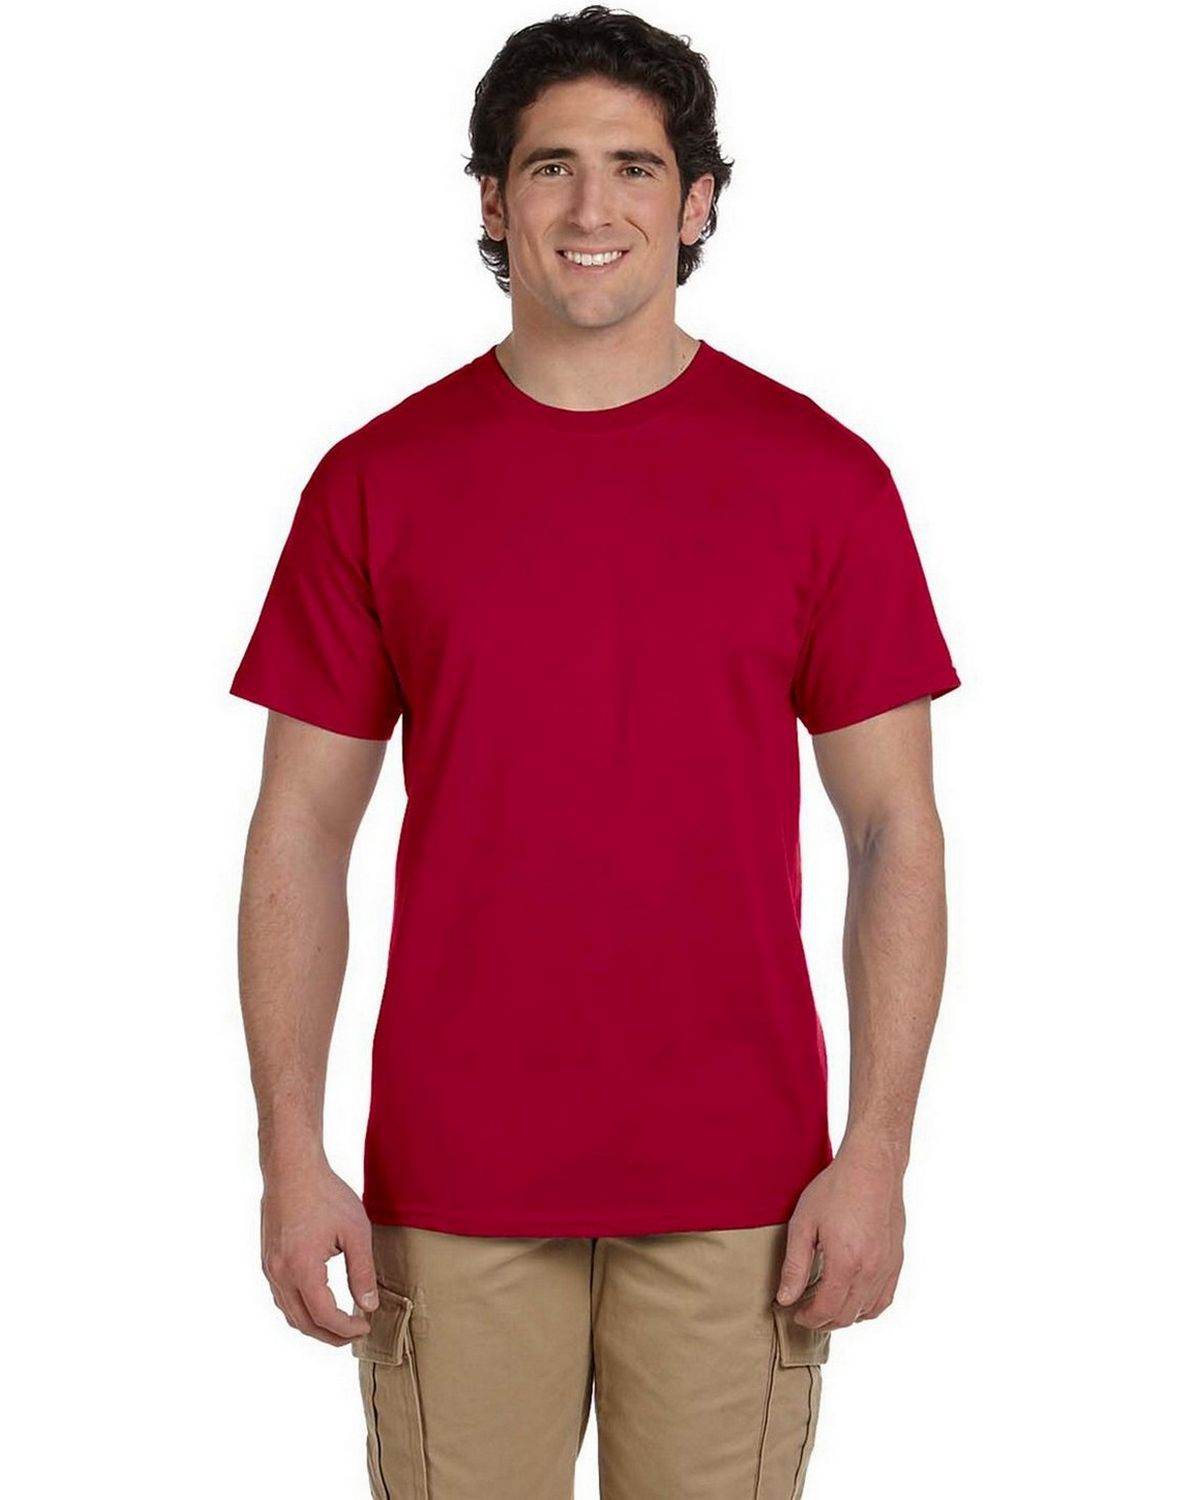 Fruit Of The Loom 3930 Short-Sleeve Tee - Crimson - L 3930